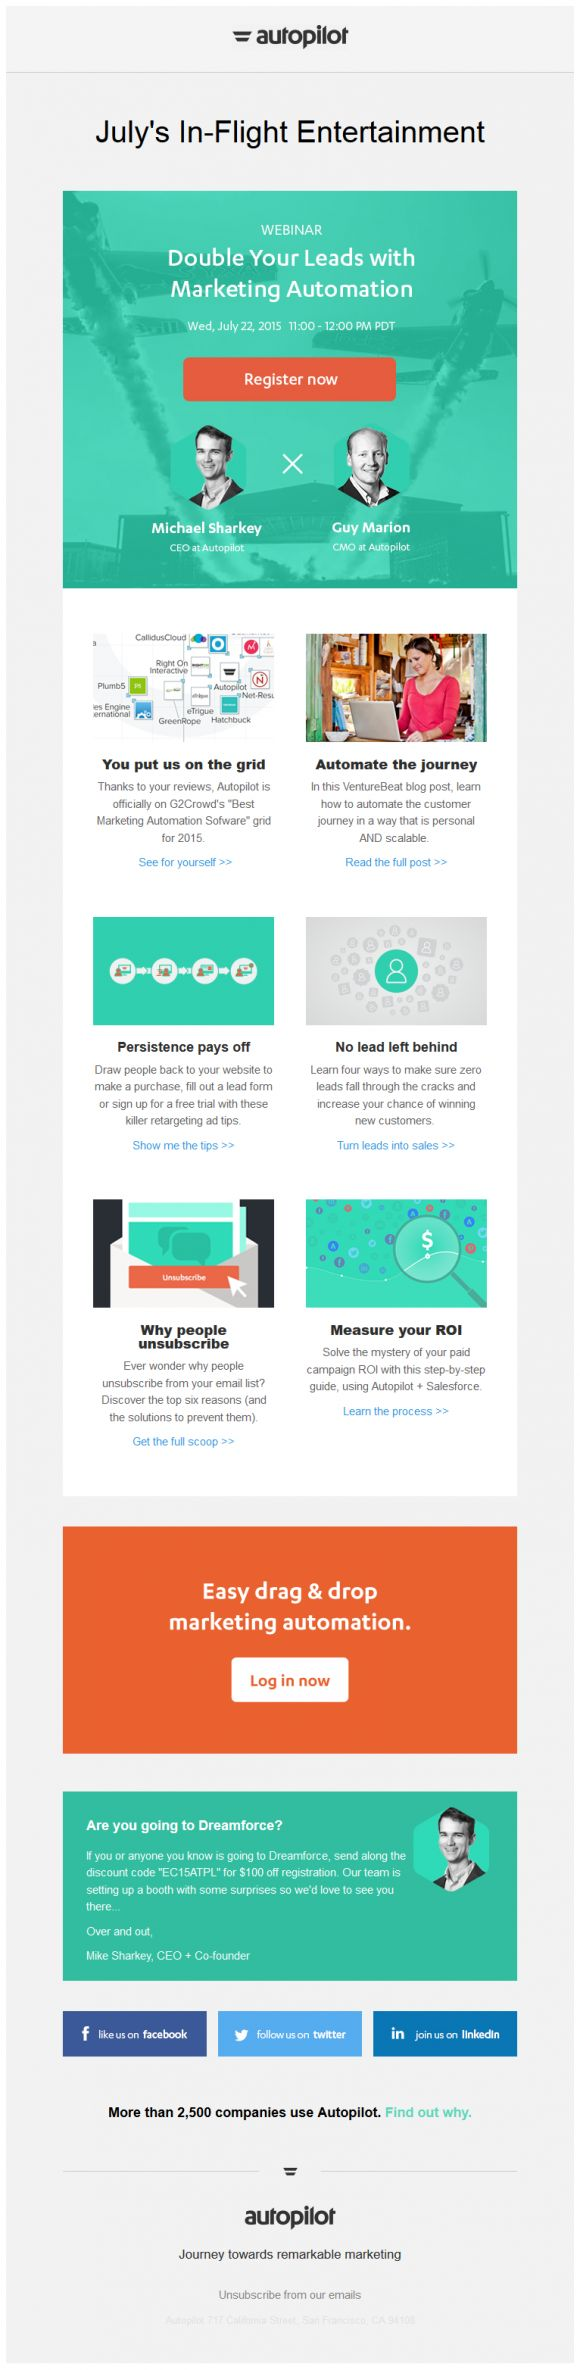 36 best Email Design images on Pinterest | Email design, Email ...